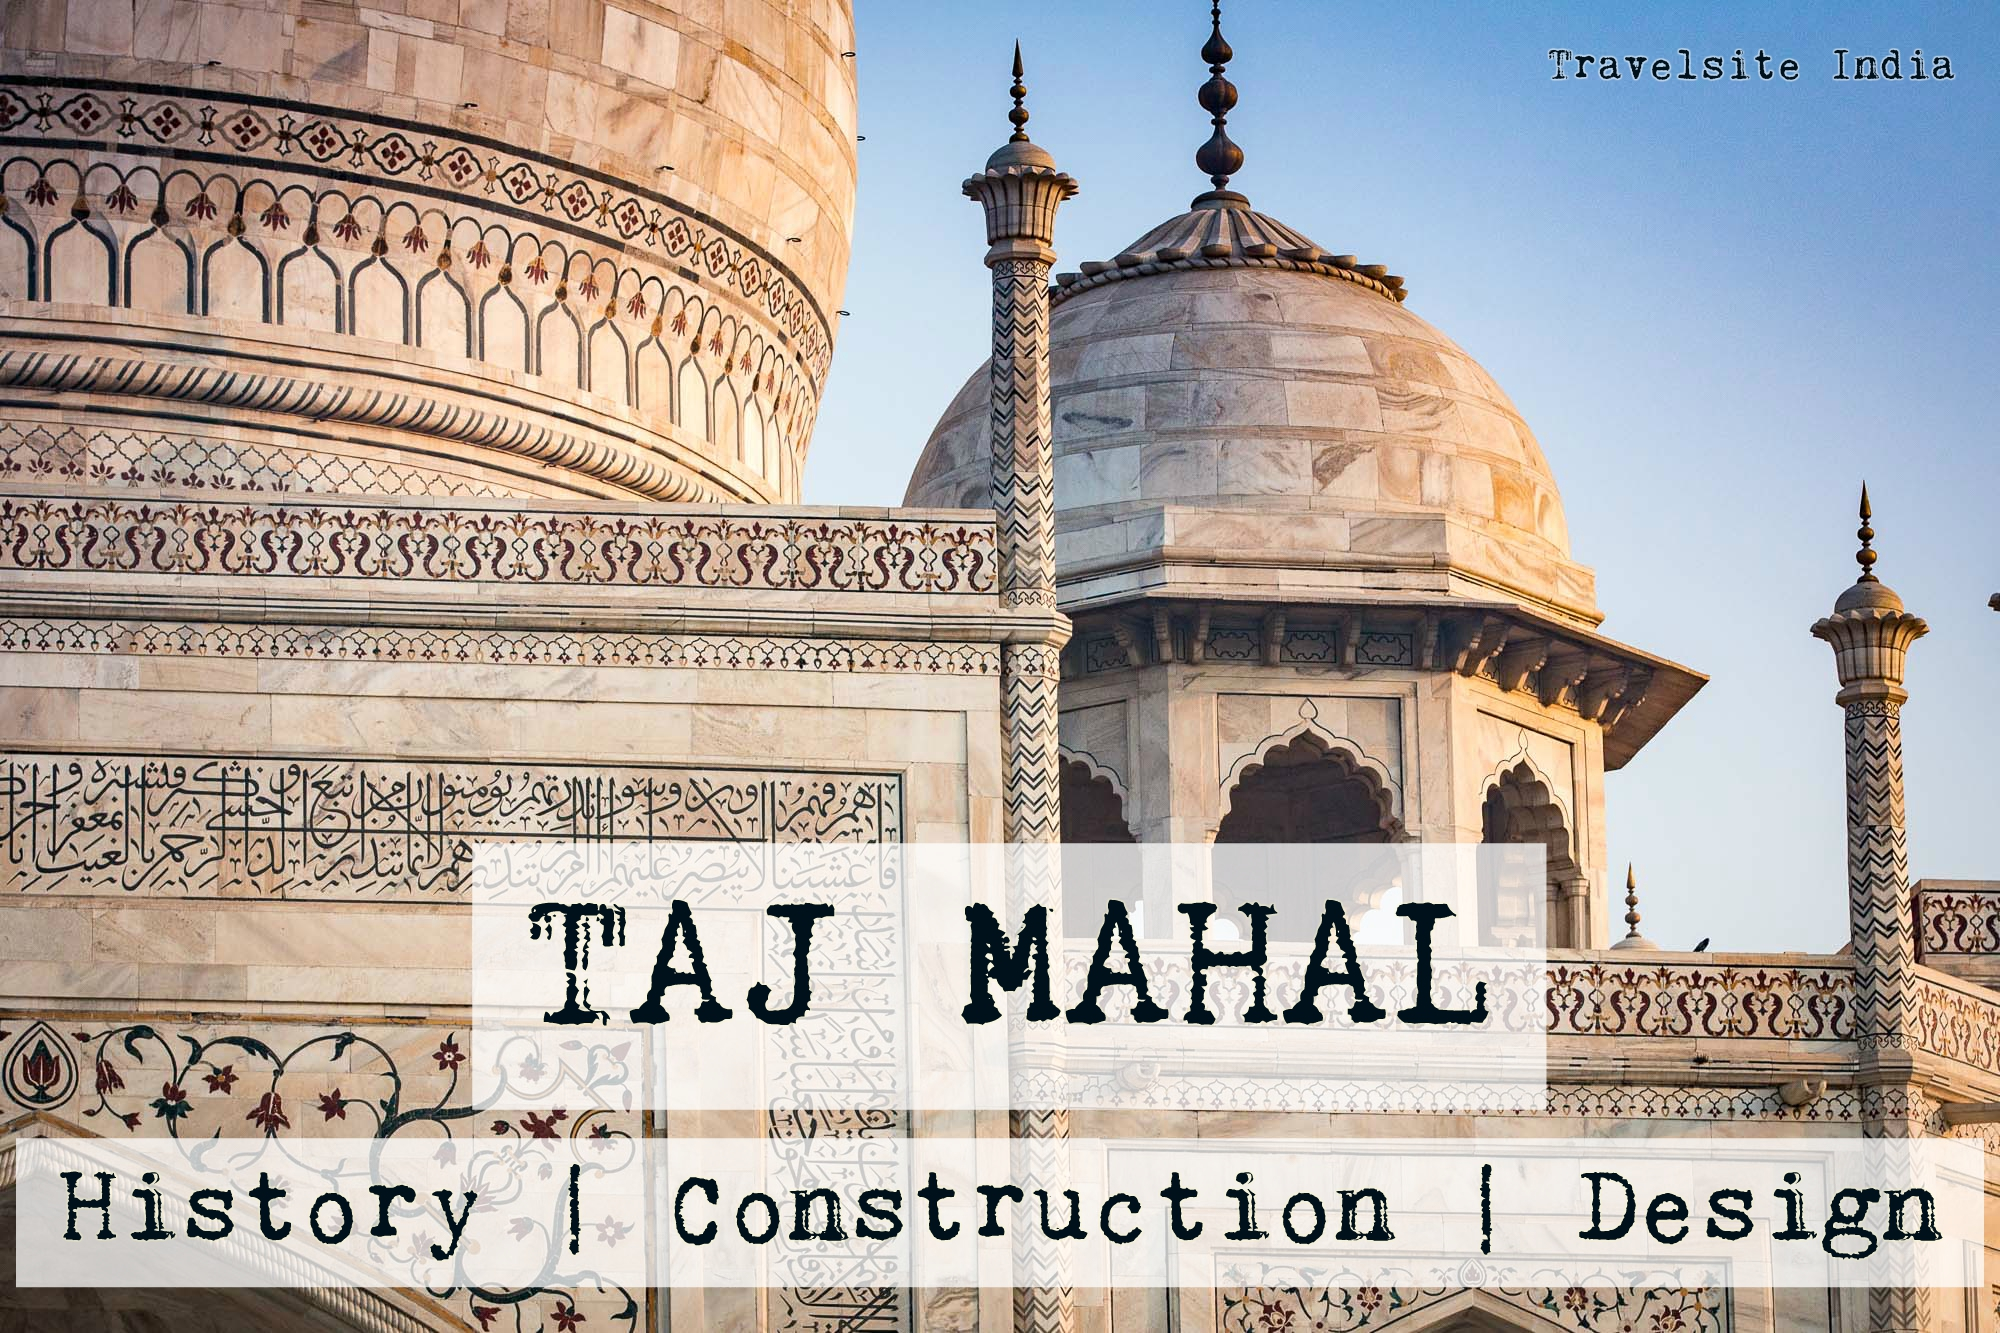 history, design & construction of taj mahal